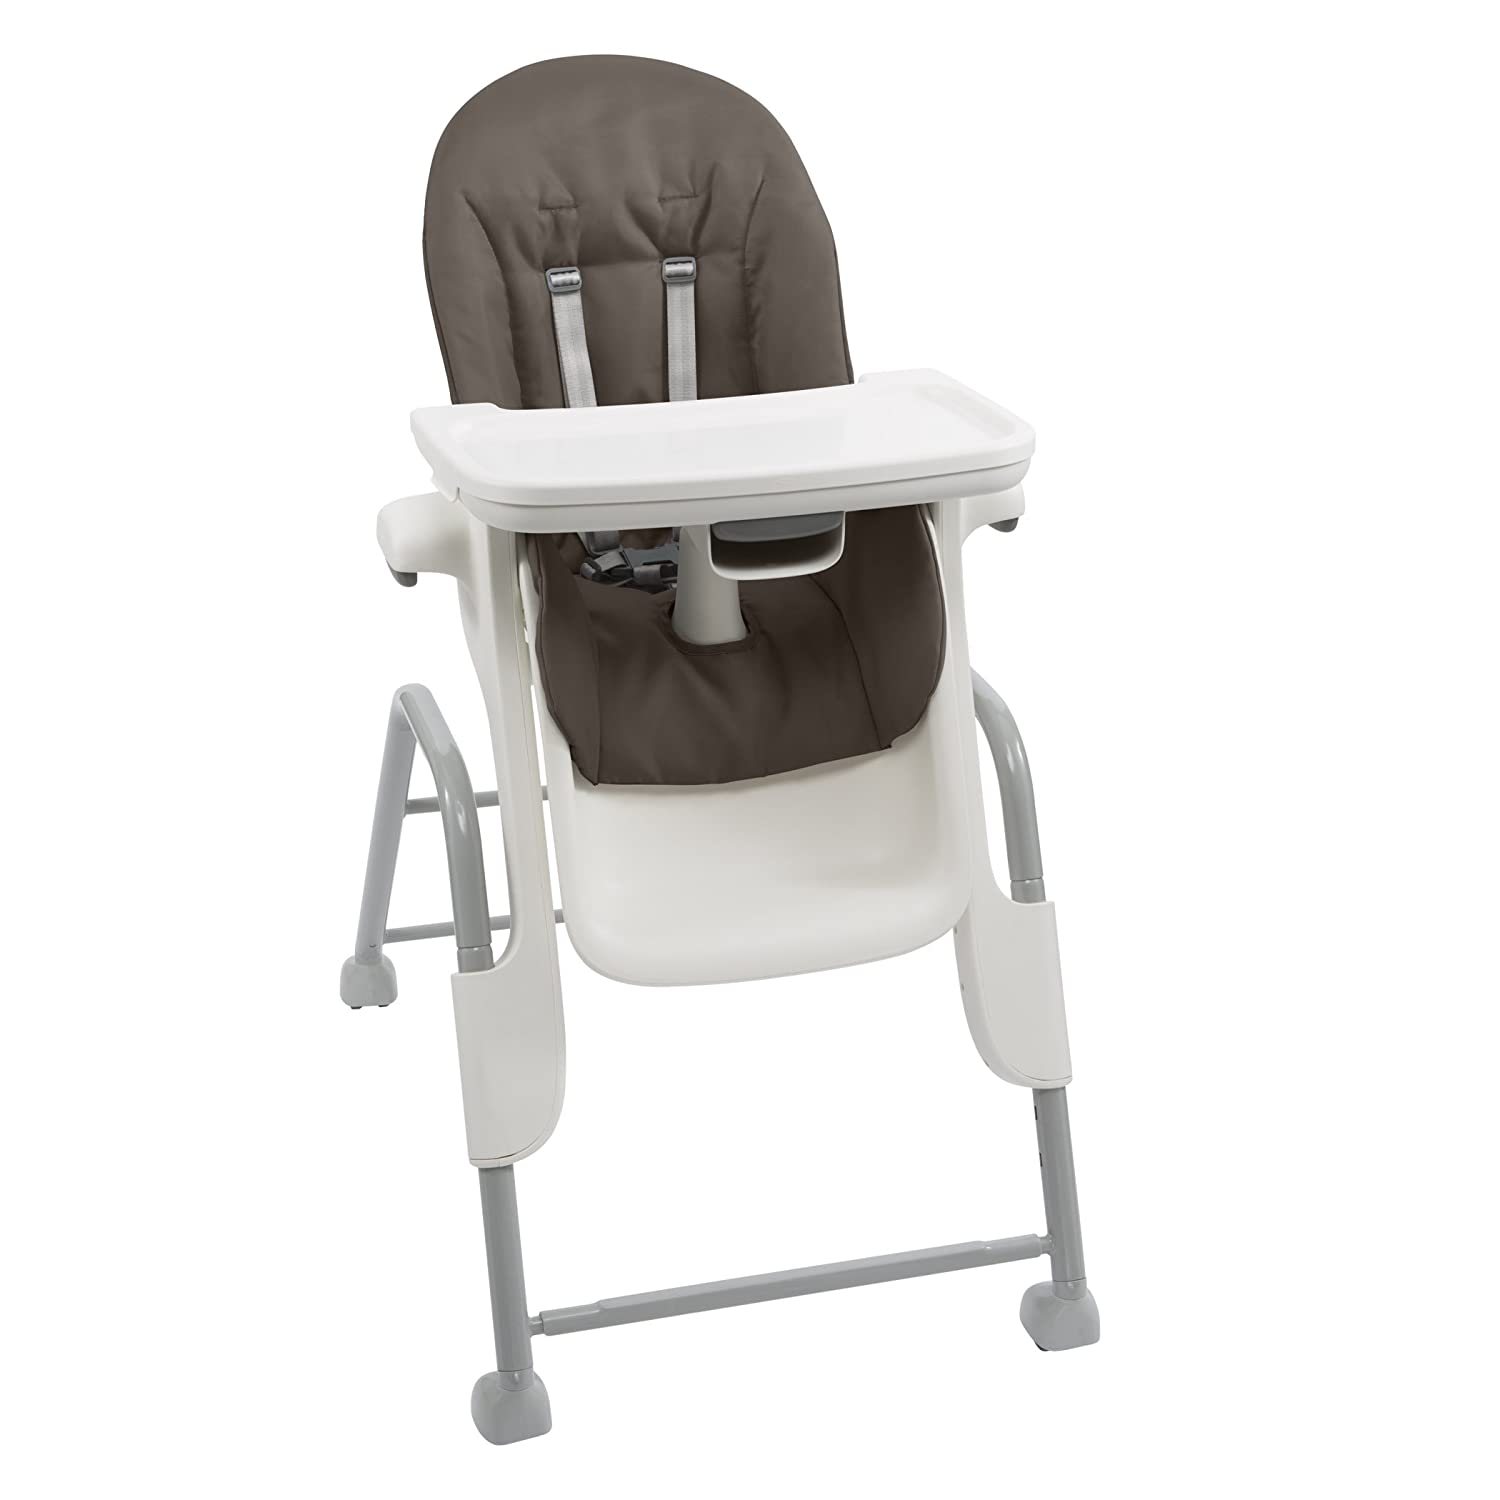 OXO Tot Seedling High Chair Mocha Amazon Baby